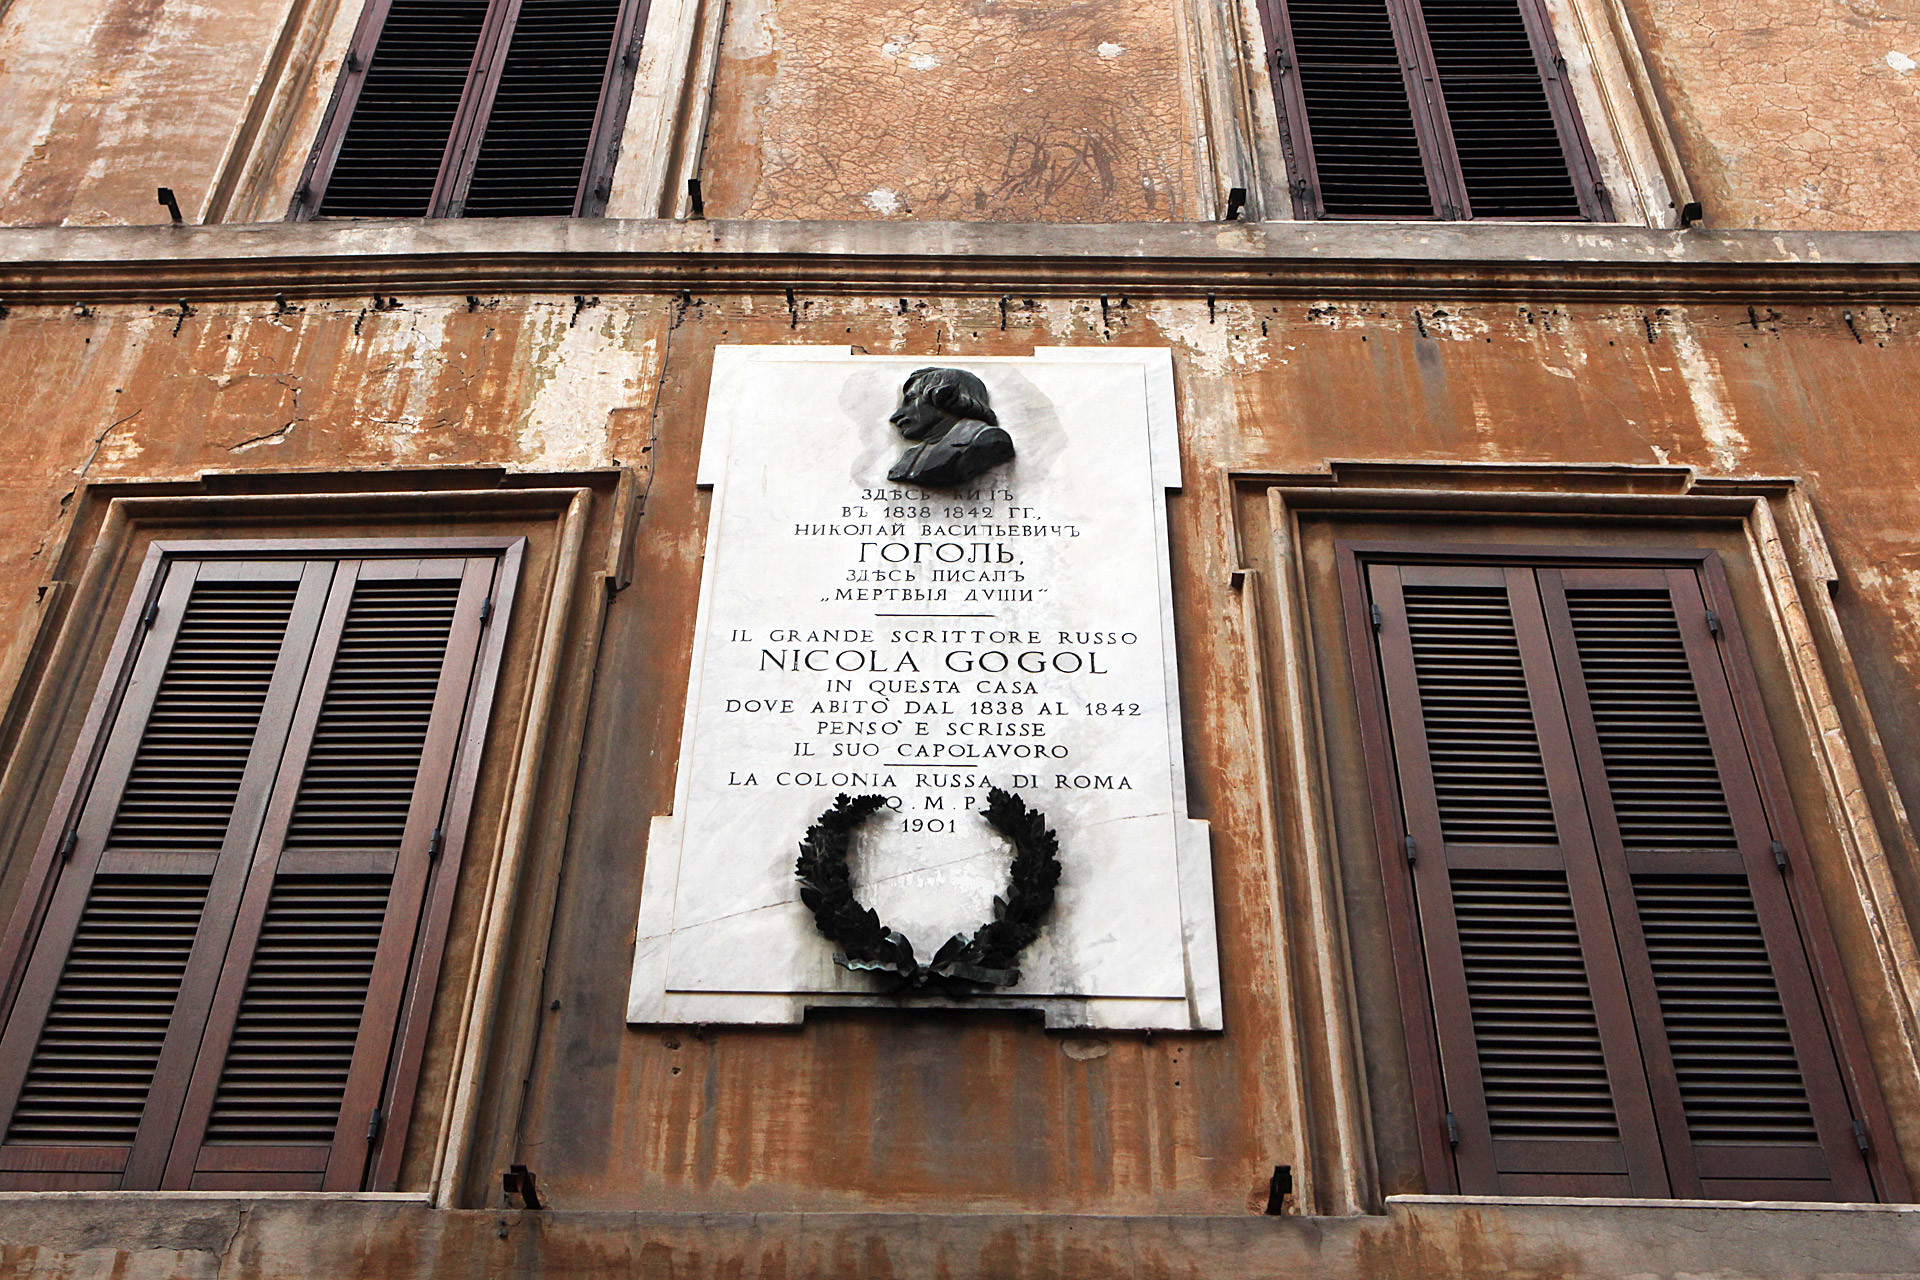 Commemorative plaque to Russian writer Nikolai Gogol at Via Sistina in Rome, Italy. Nikolai Gogol lived in this house at Via Sistina 125 and wrote here his major novel The Dead Souls.